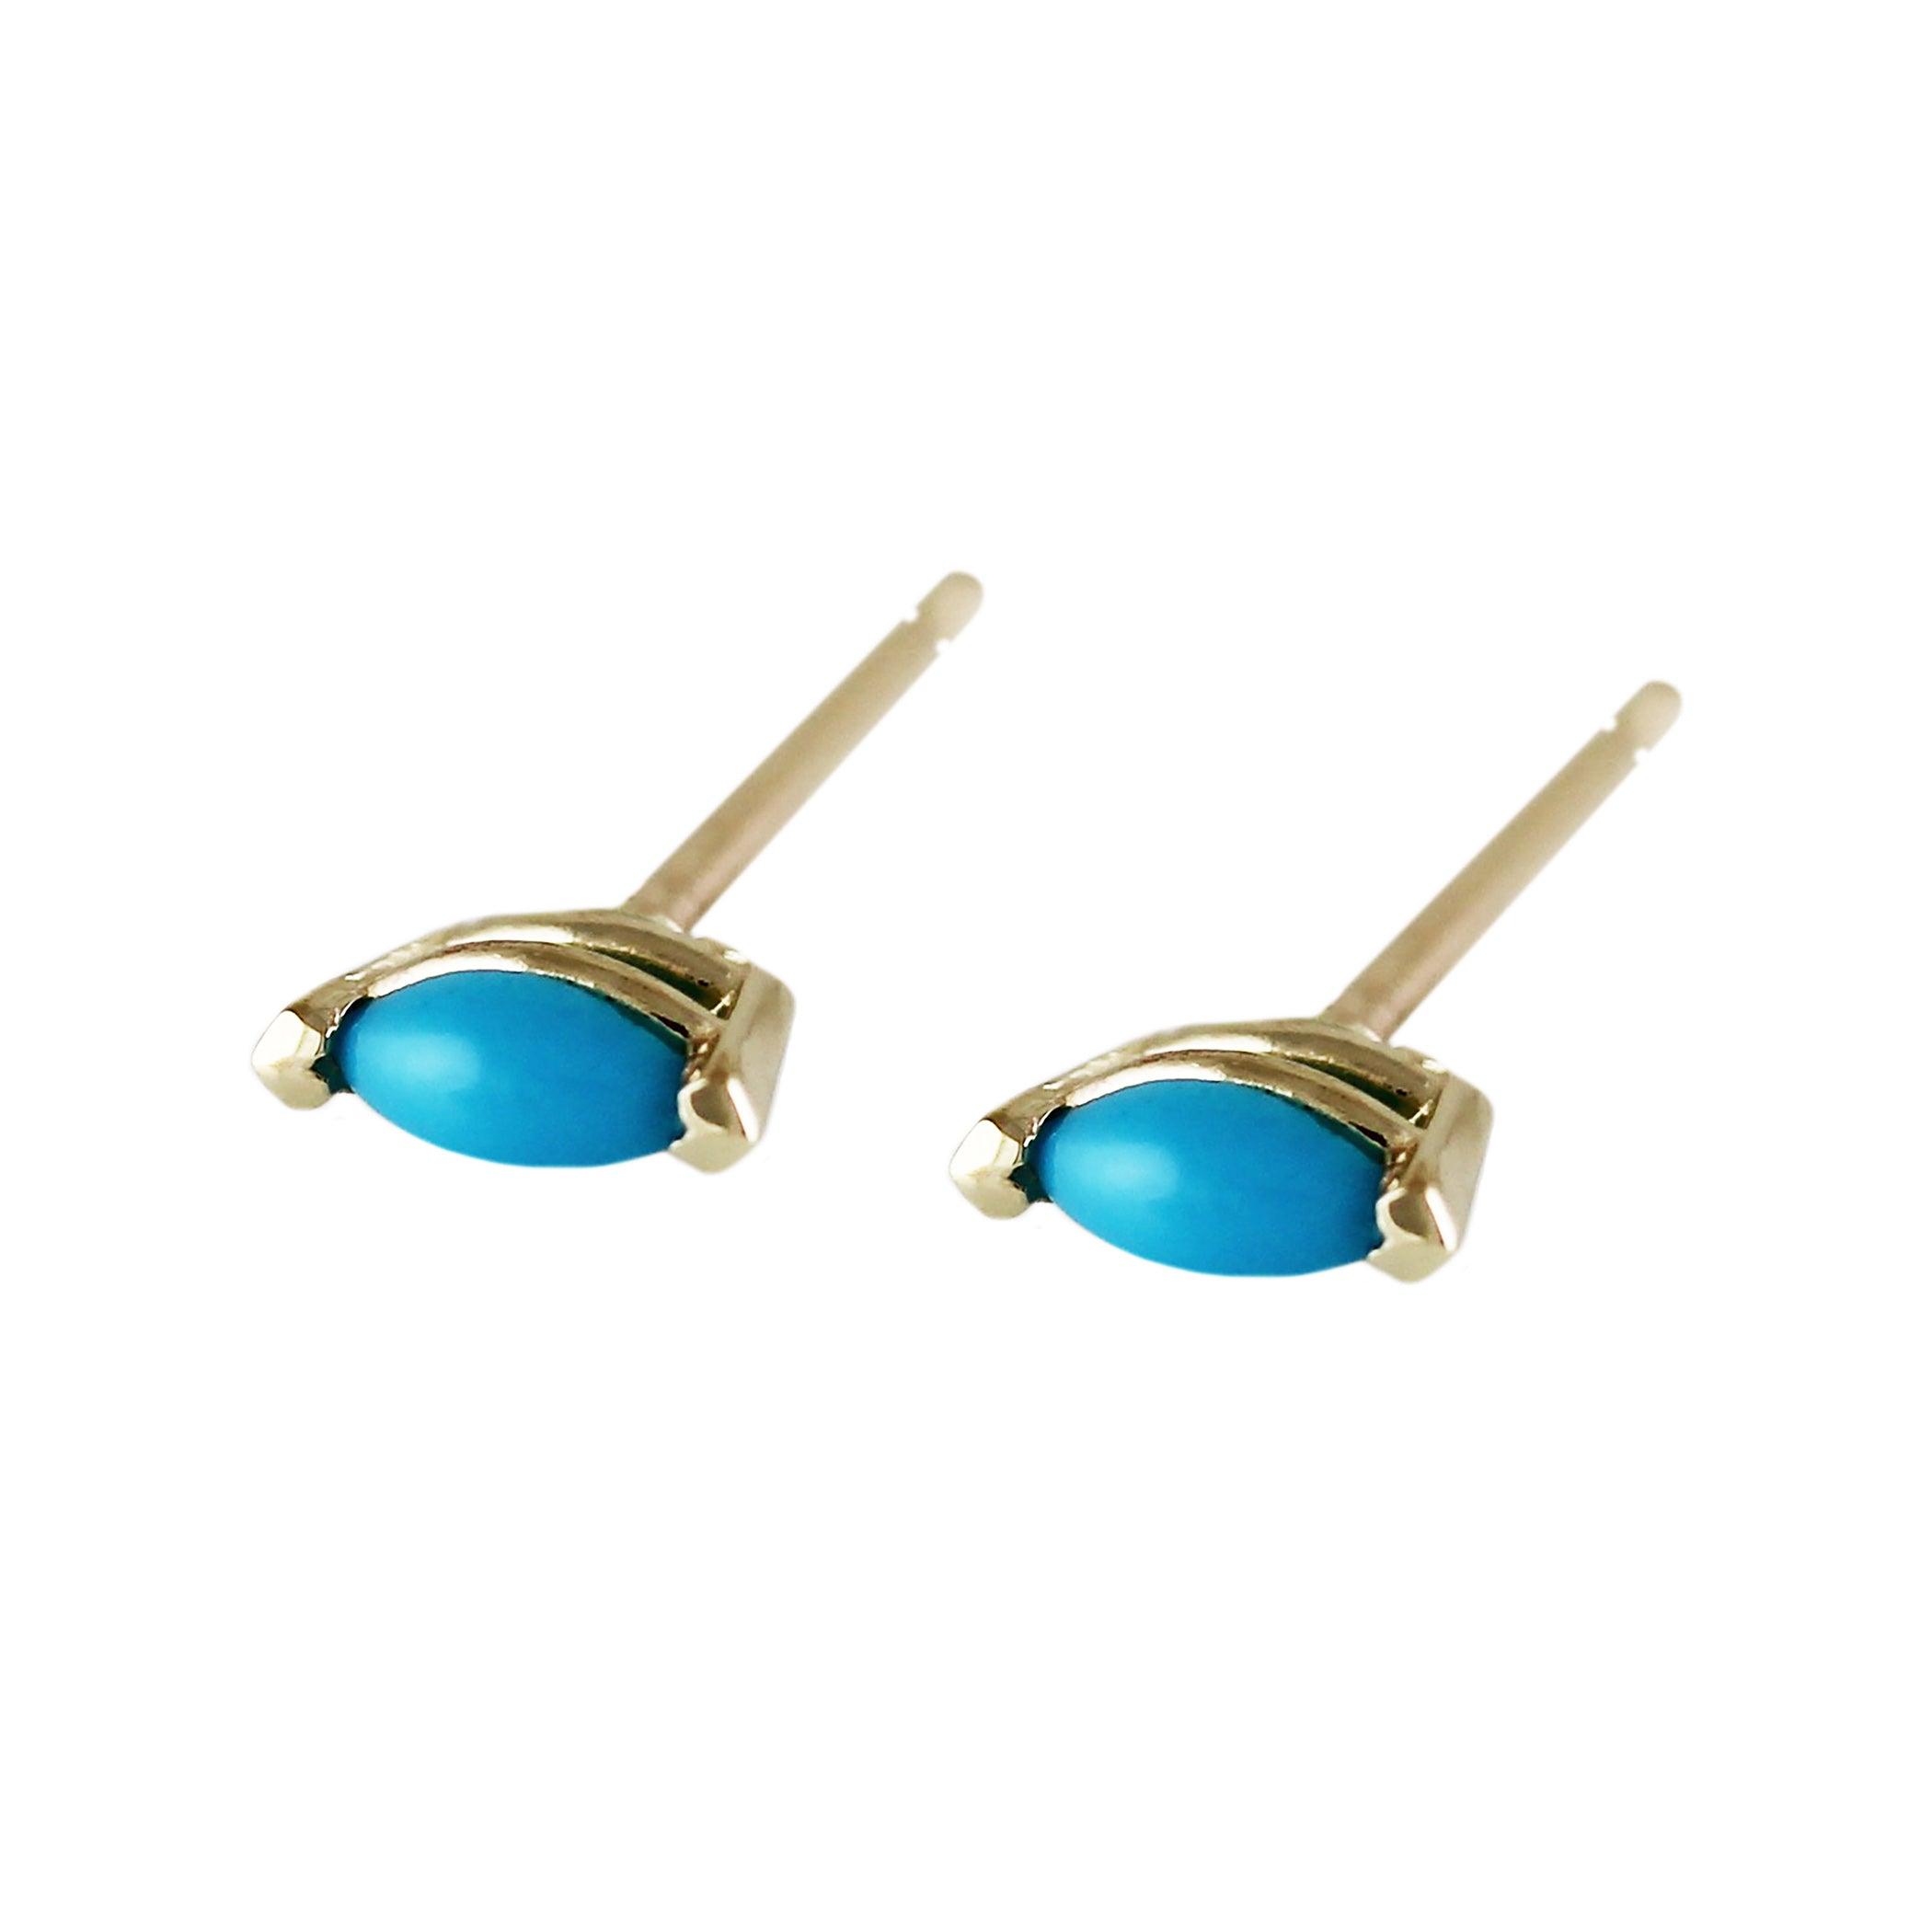 jewelry made mood wood our earrings turquoise a in mellow pair inlay goods mango stud thailand